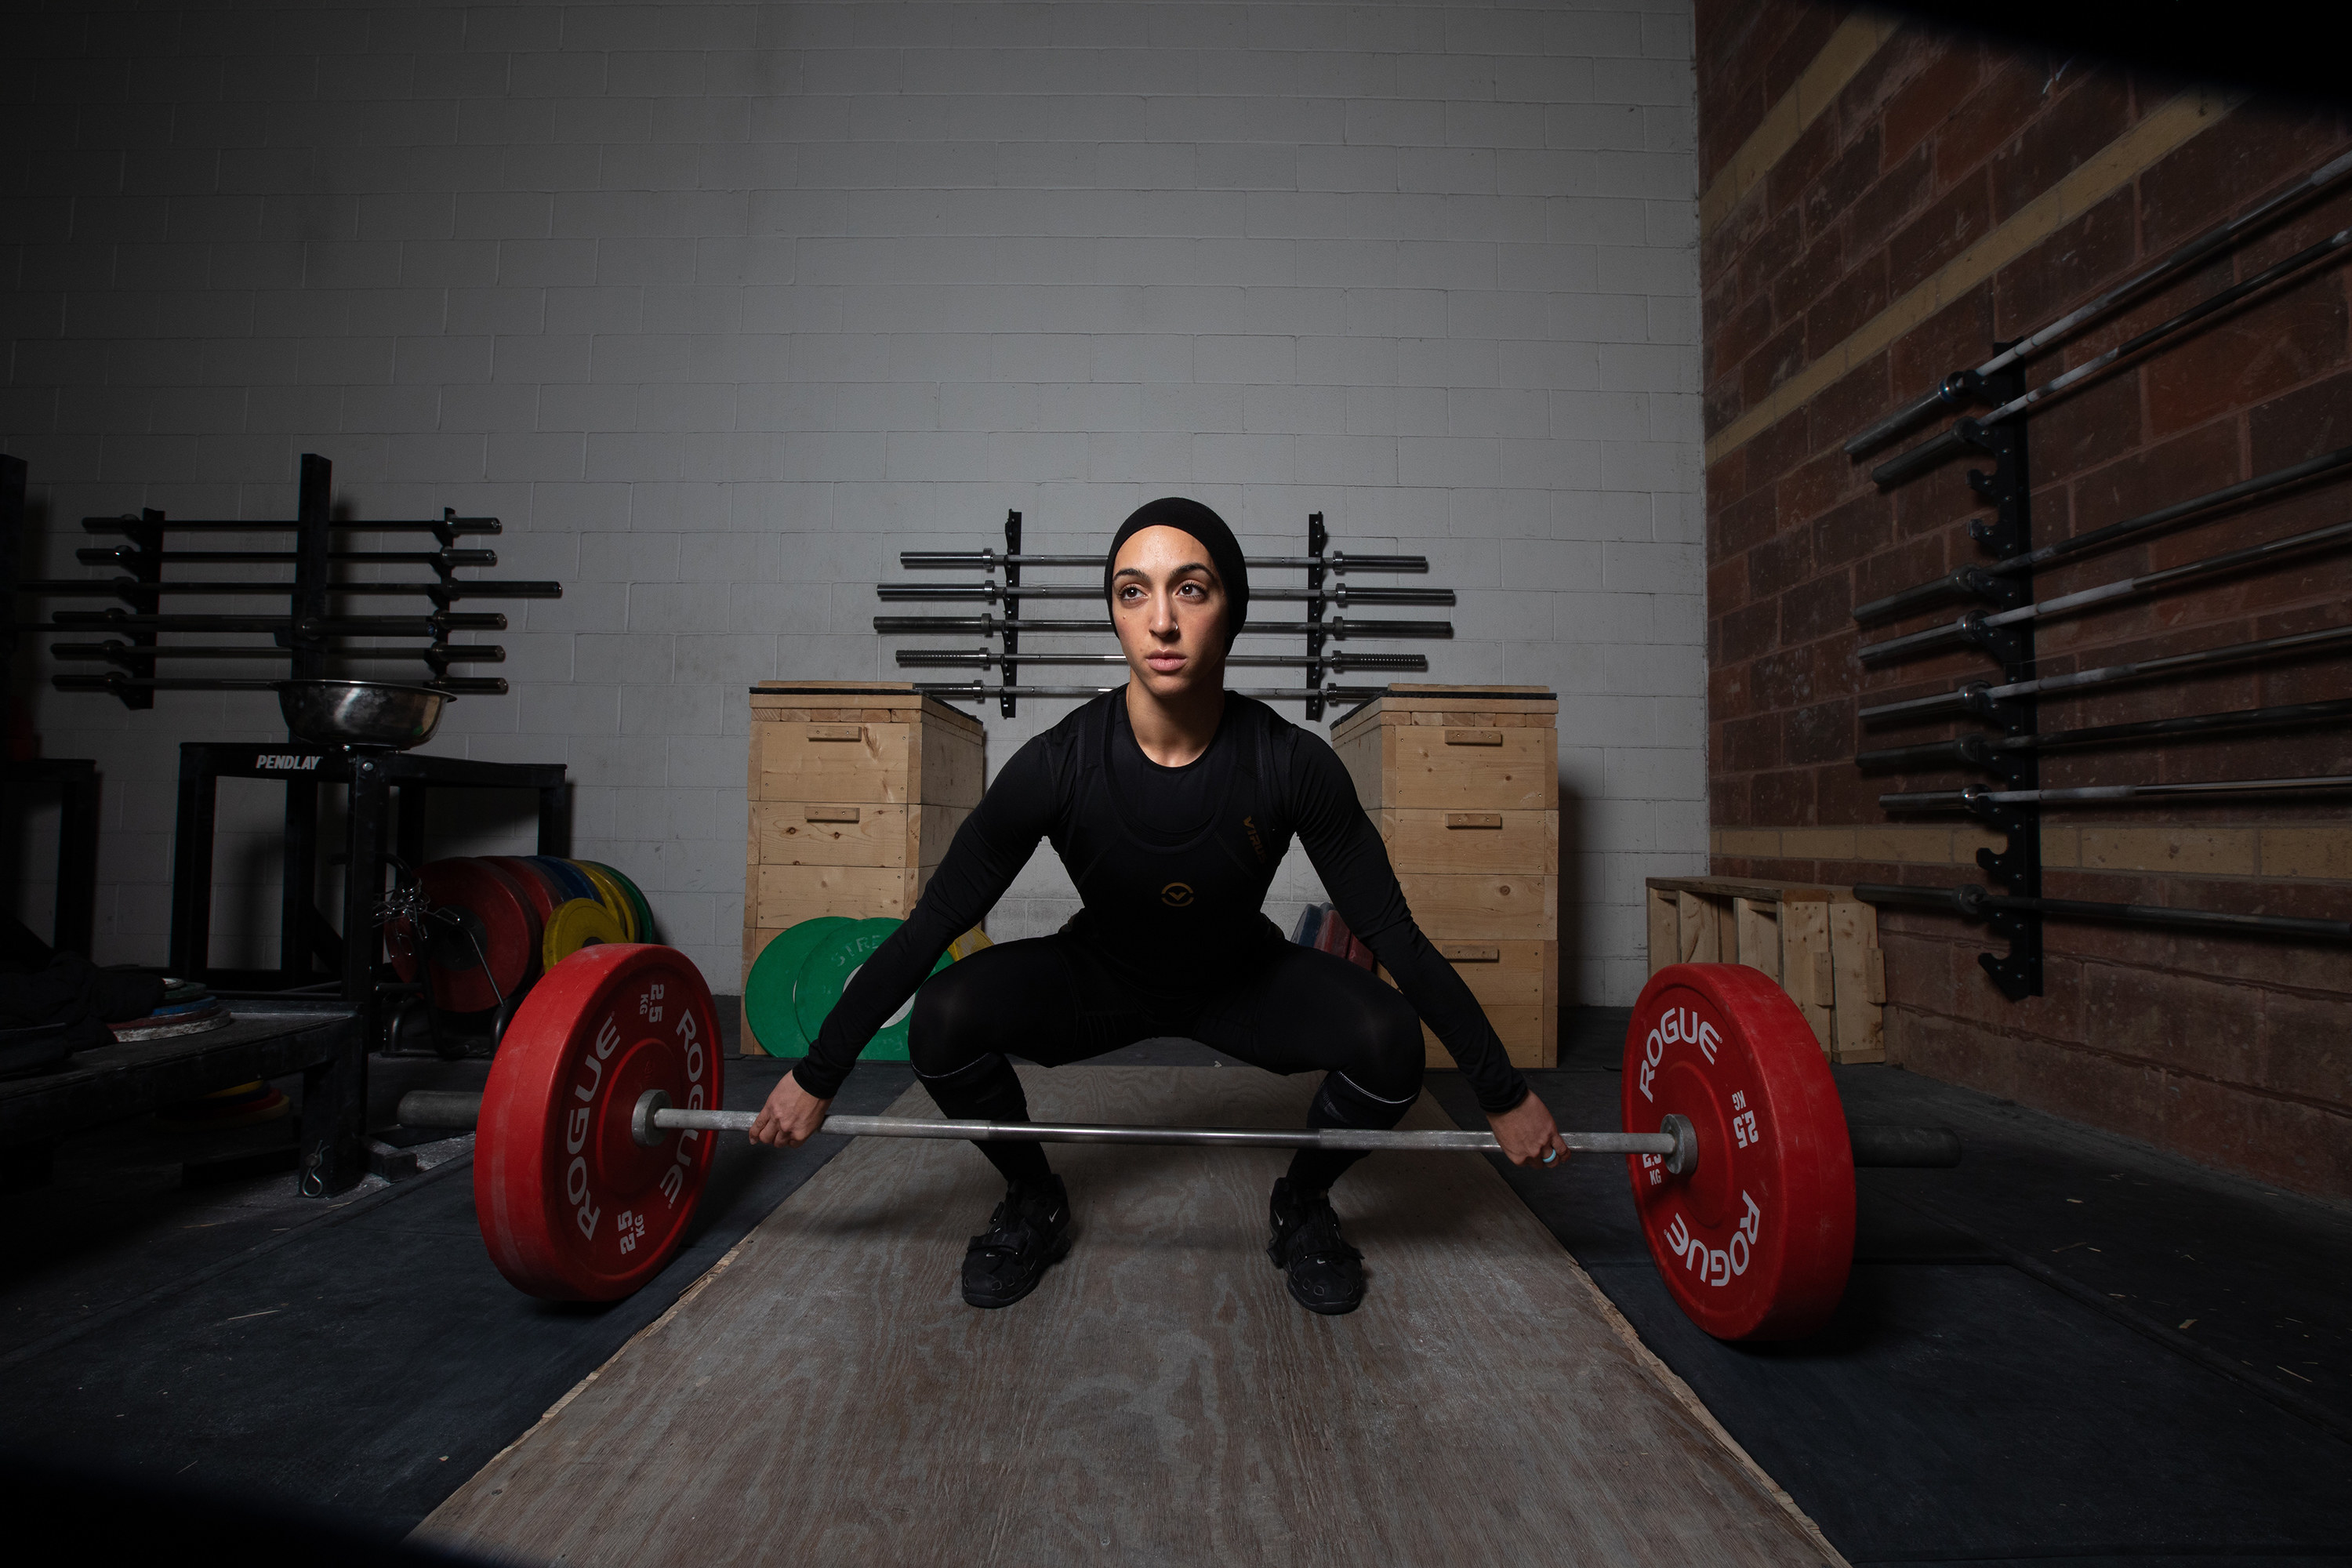 A woman with her hair covered and wearing full body workout gear lifts weights in a gym